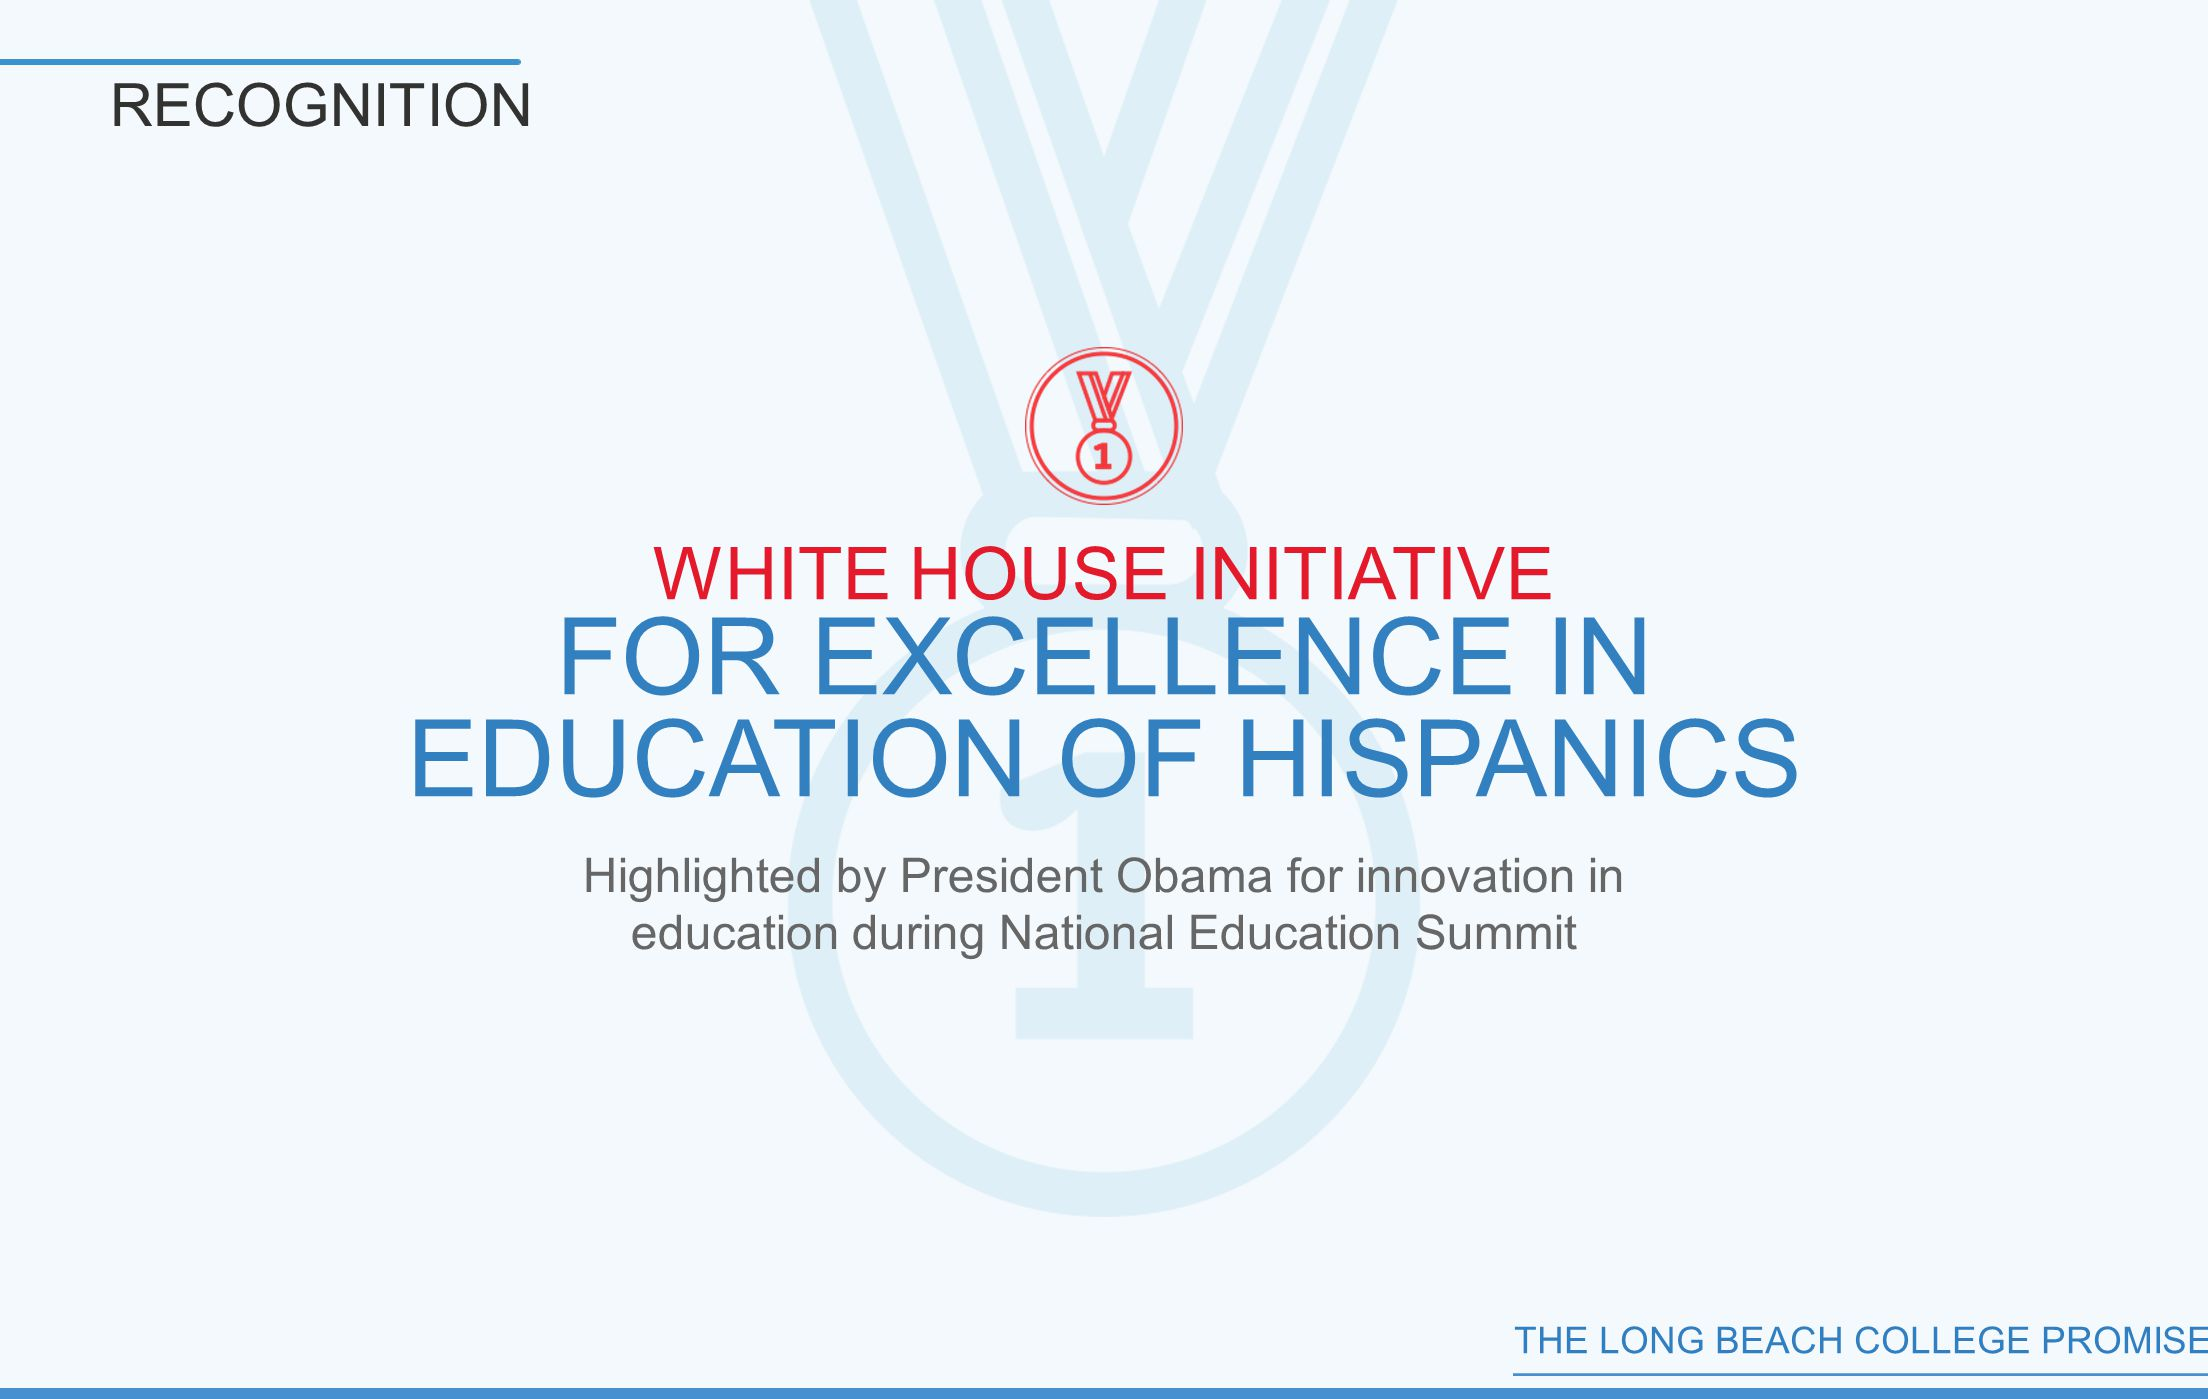 THE LONG BEACH COLLEGE PROMISE RECOGNITION WHITE HOUSE INITIATIVE FOR EXCELLENCE IN EDUCATION OF HISPANICS Highlighted by President Obama for innovation in education during National Education Summit